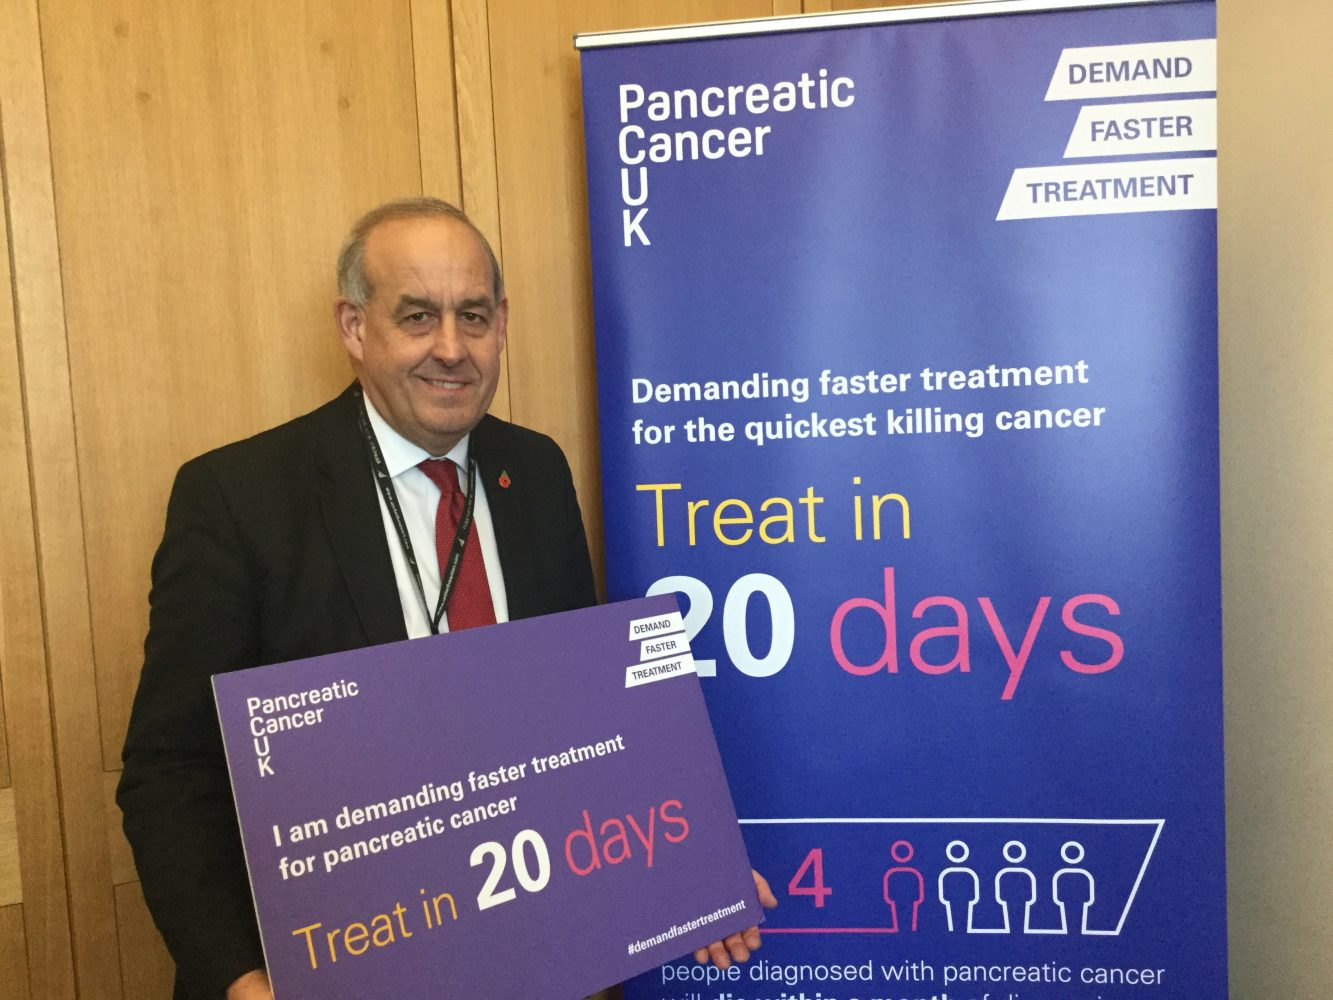 Pancreatic Cancer UK - supporting the 20 day treatment goal - David